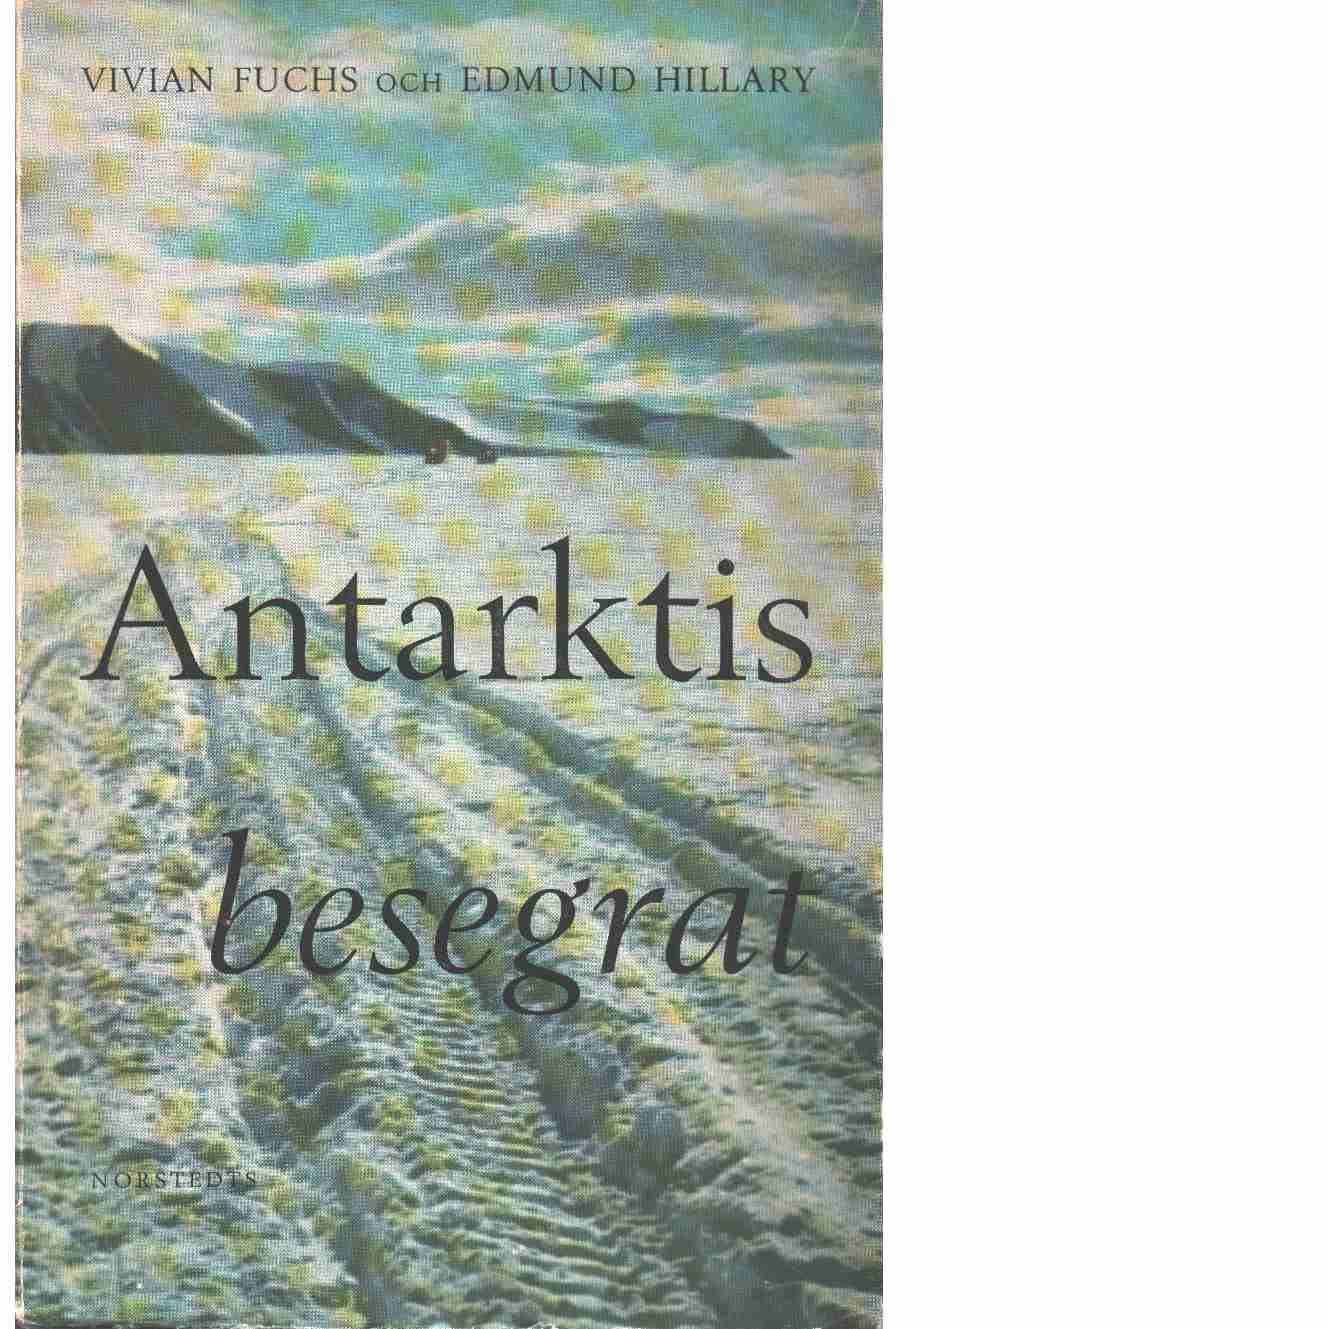 Antarktis besegrat : the Commonwealth Trans-Antarctic expedition 1955-58  - Fuchs, Vivian och Hillary, Edmund